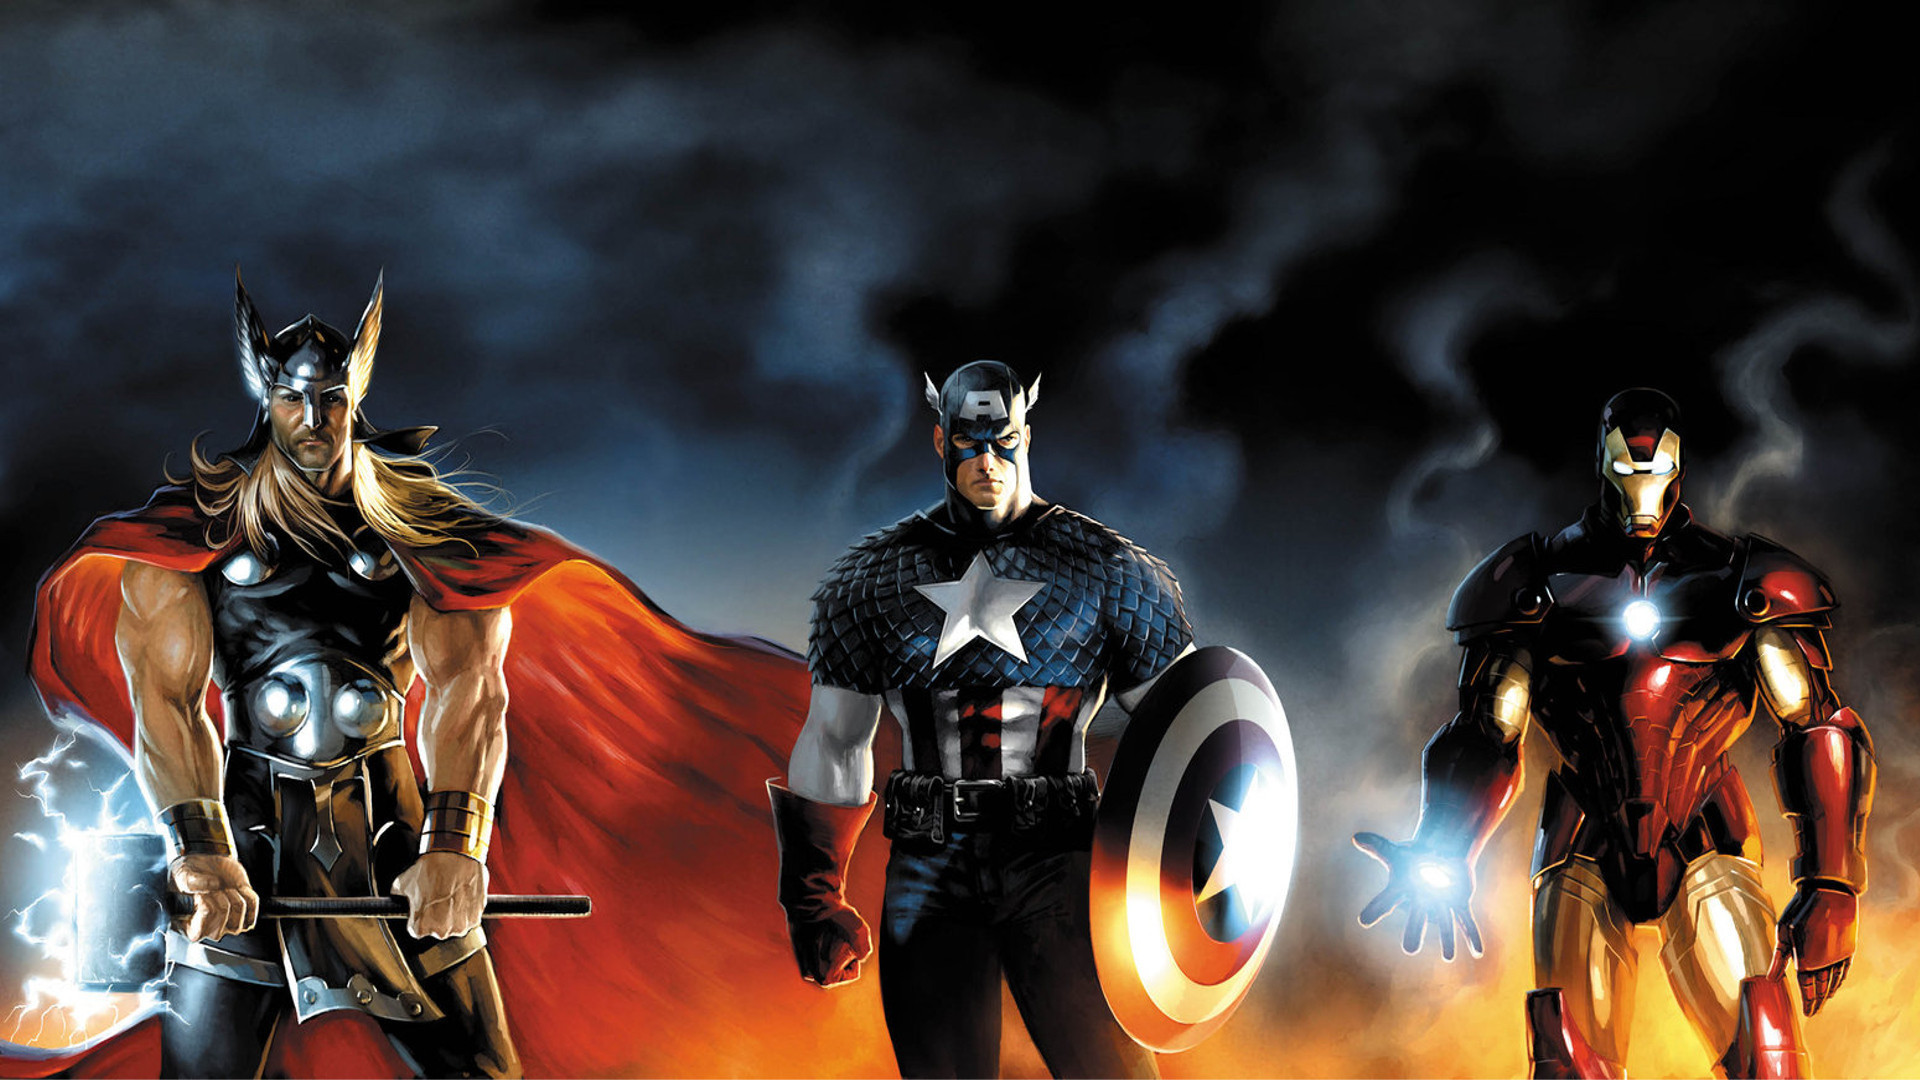 Marvel Heroes Hd Wallpapers 1920x1080